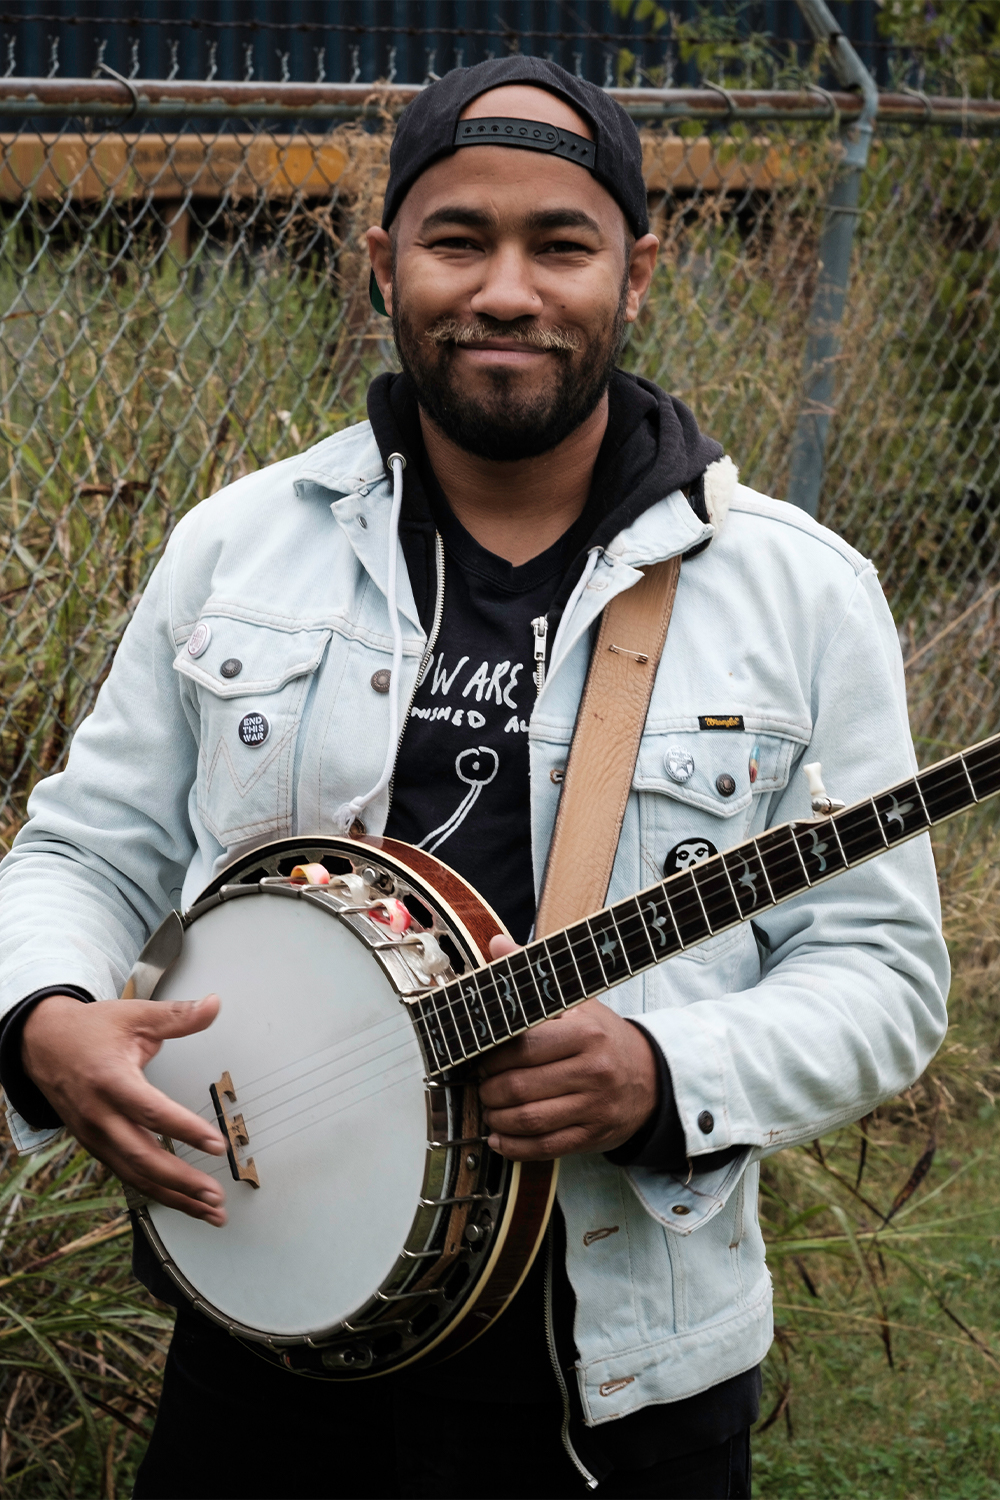 James Bookert plays the RK-R36